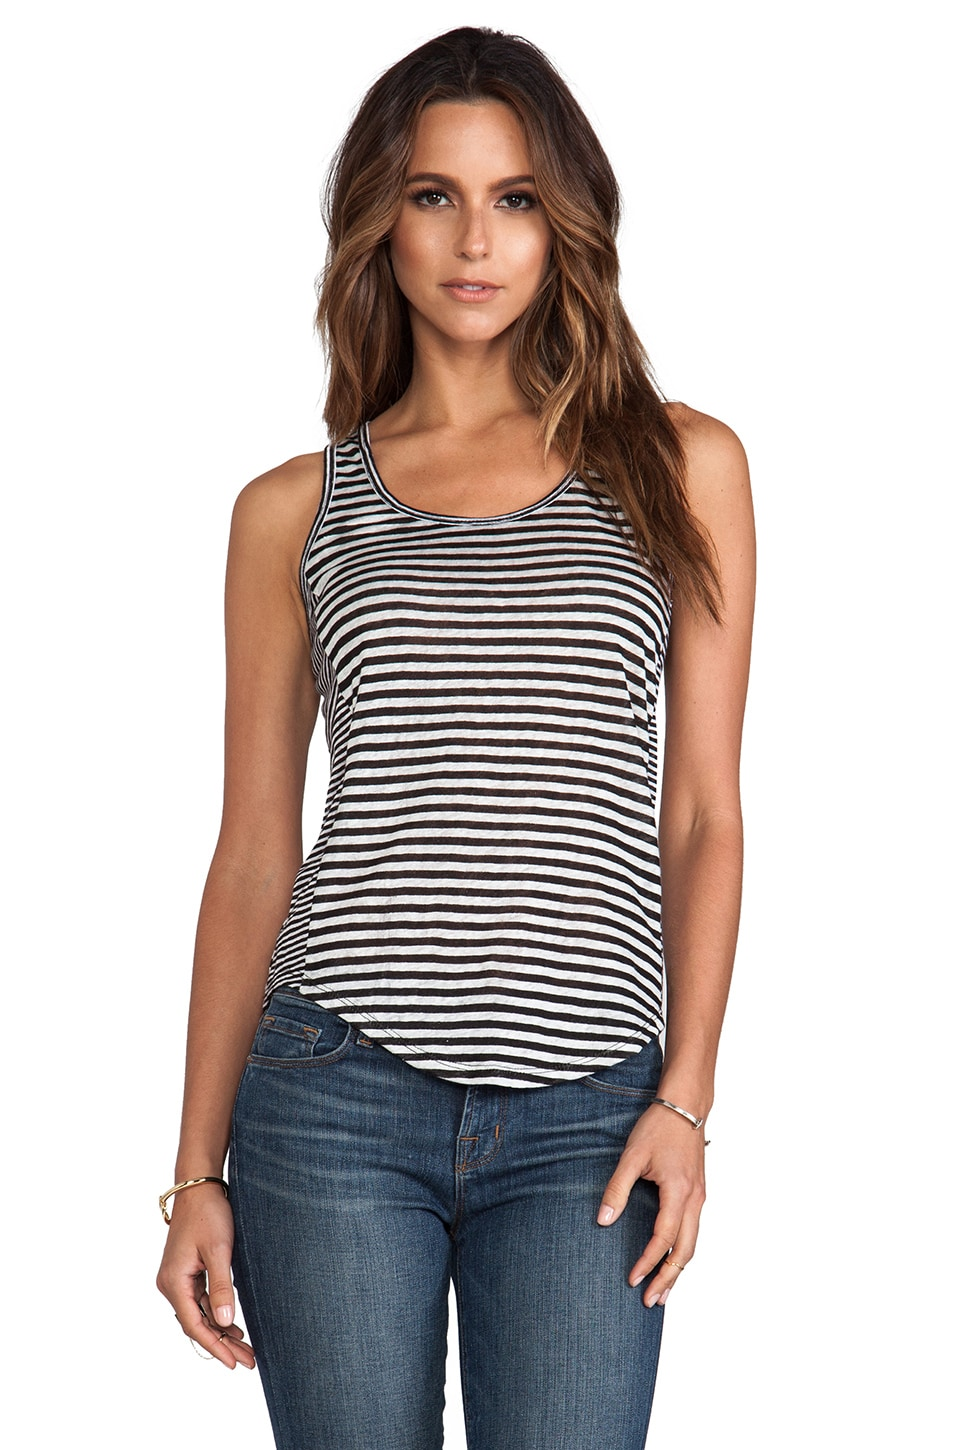 Whetherly Linen Stripe Ashley Tank in Black & White